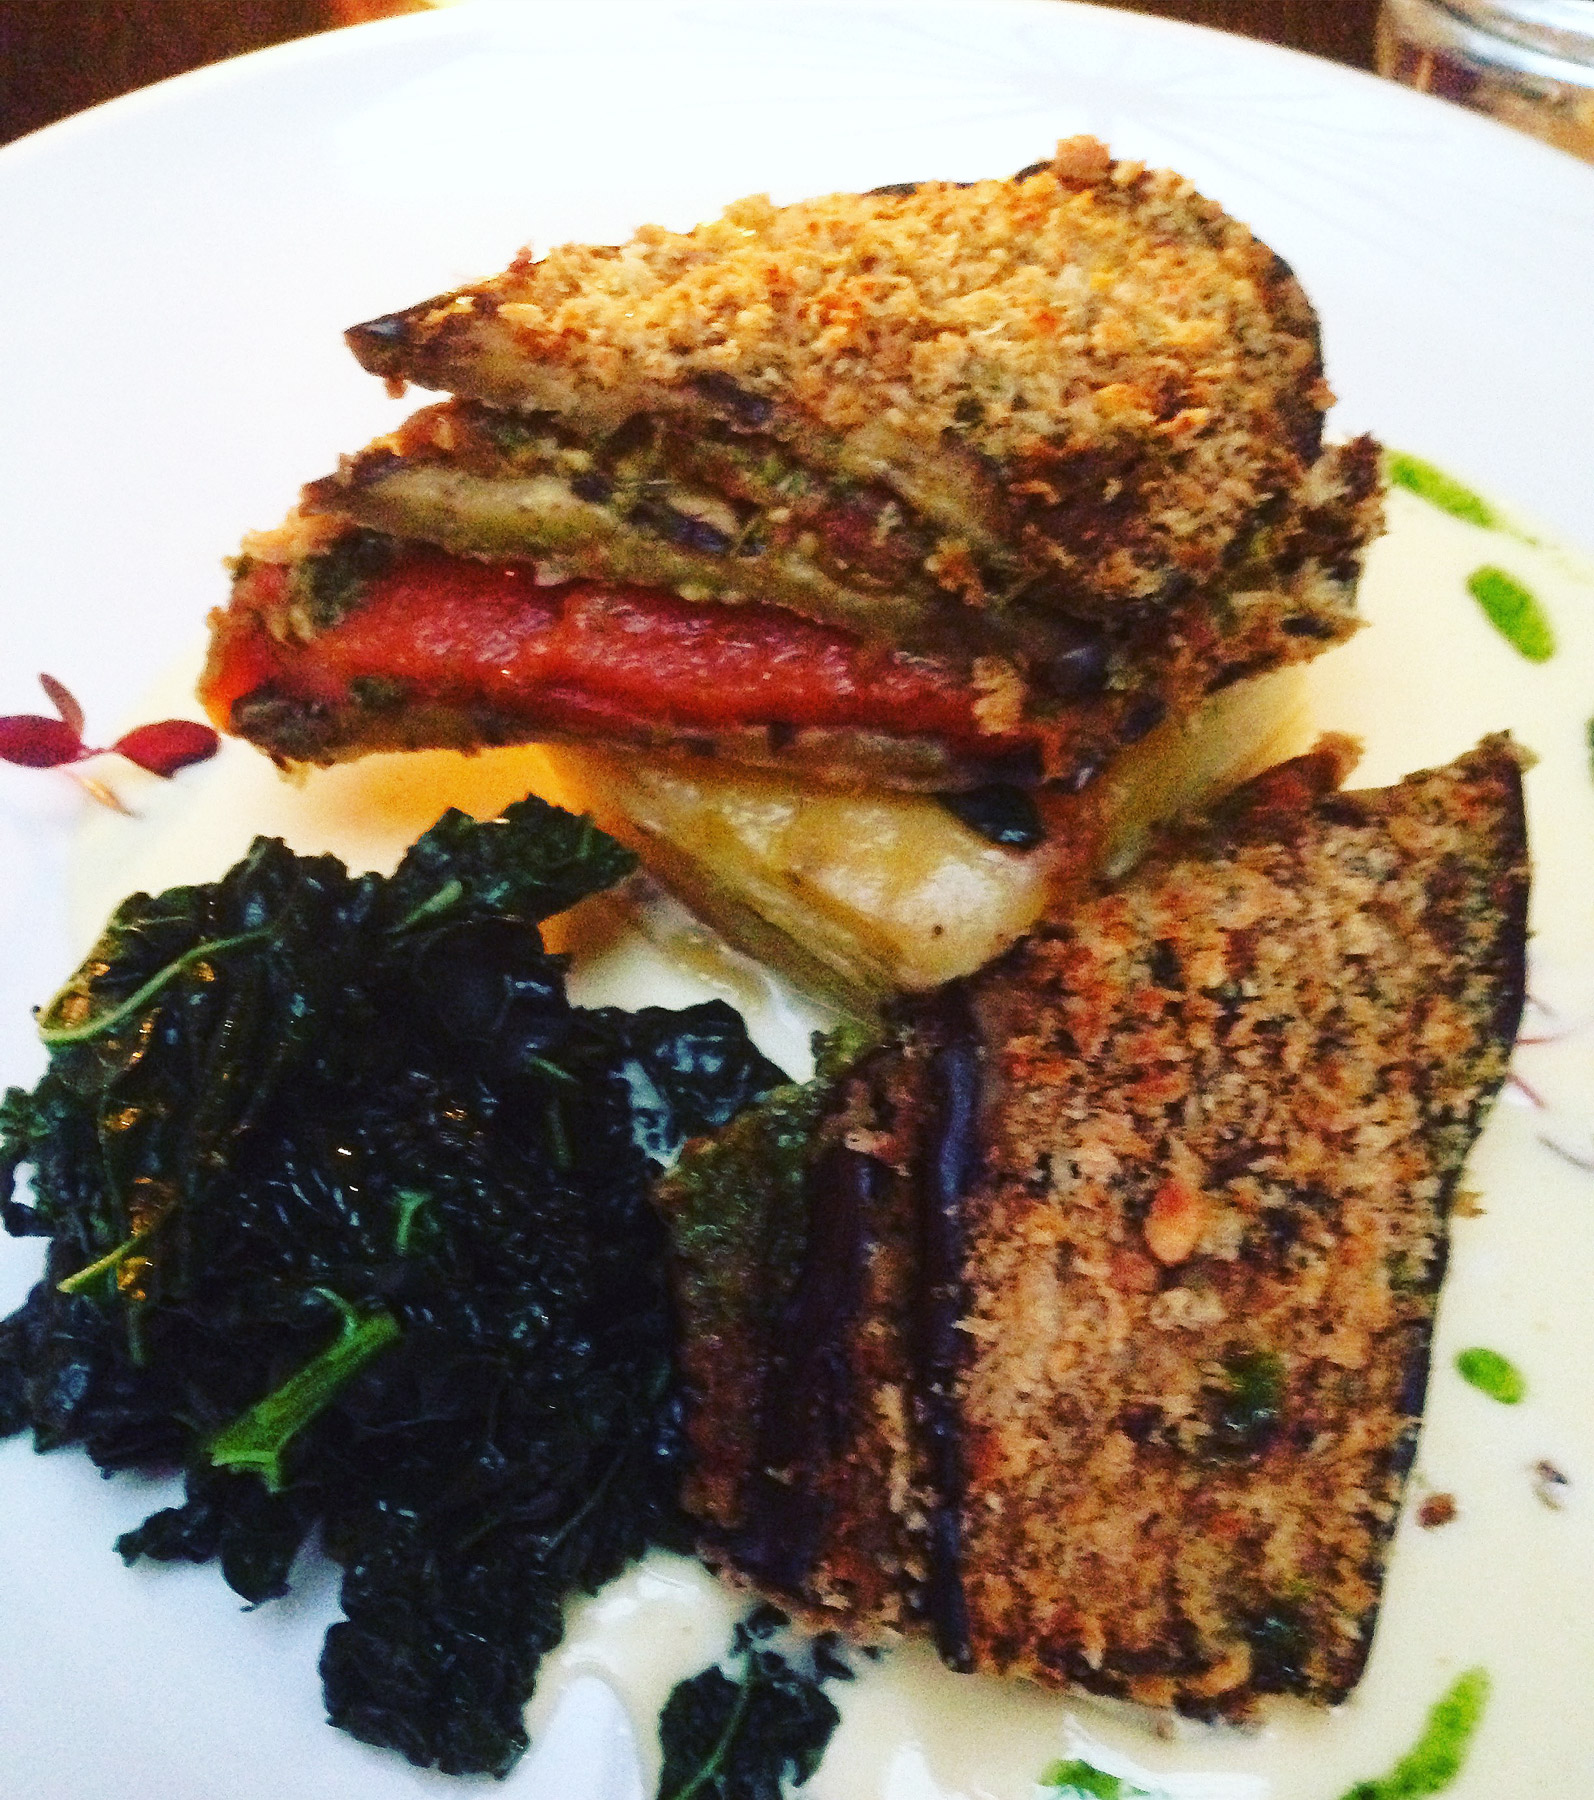 The Gate In London - Vegetarianism Never Tasted So Good 8